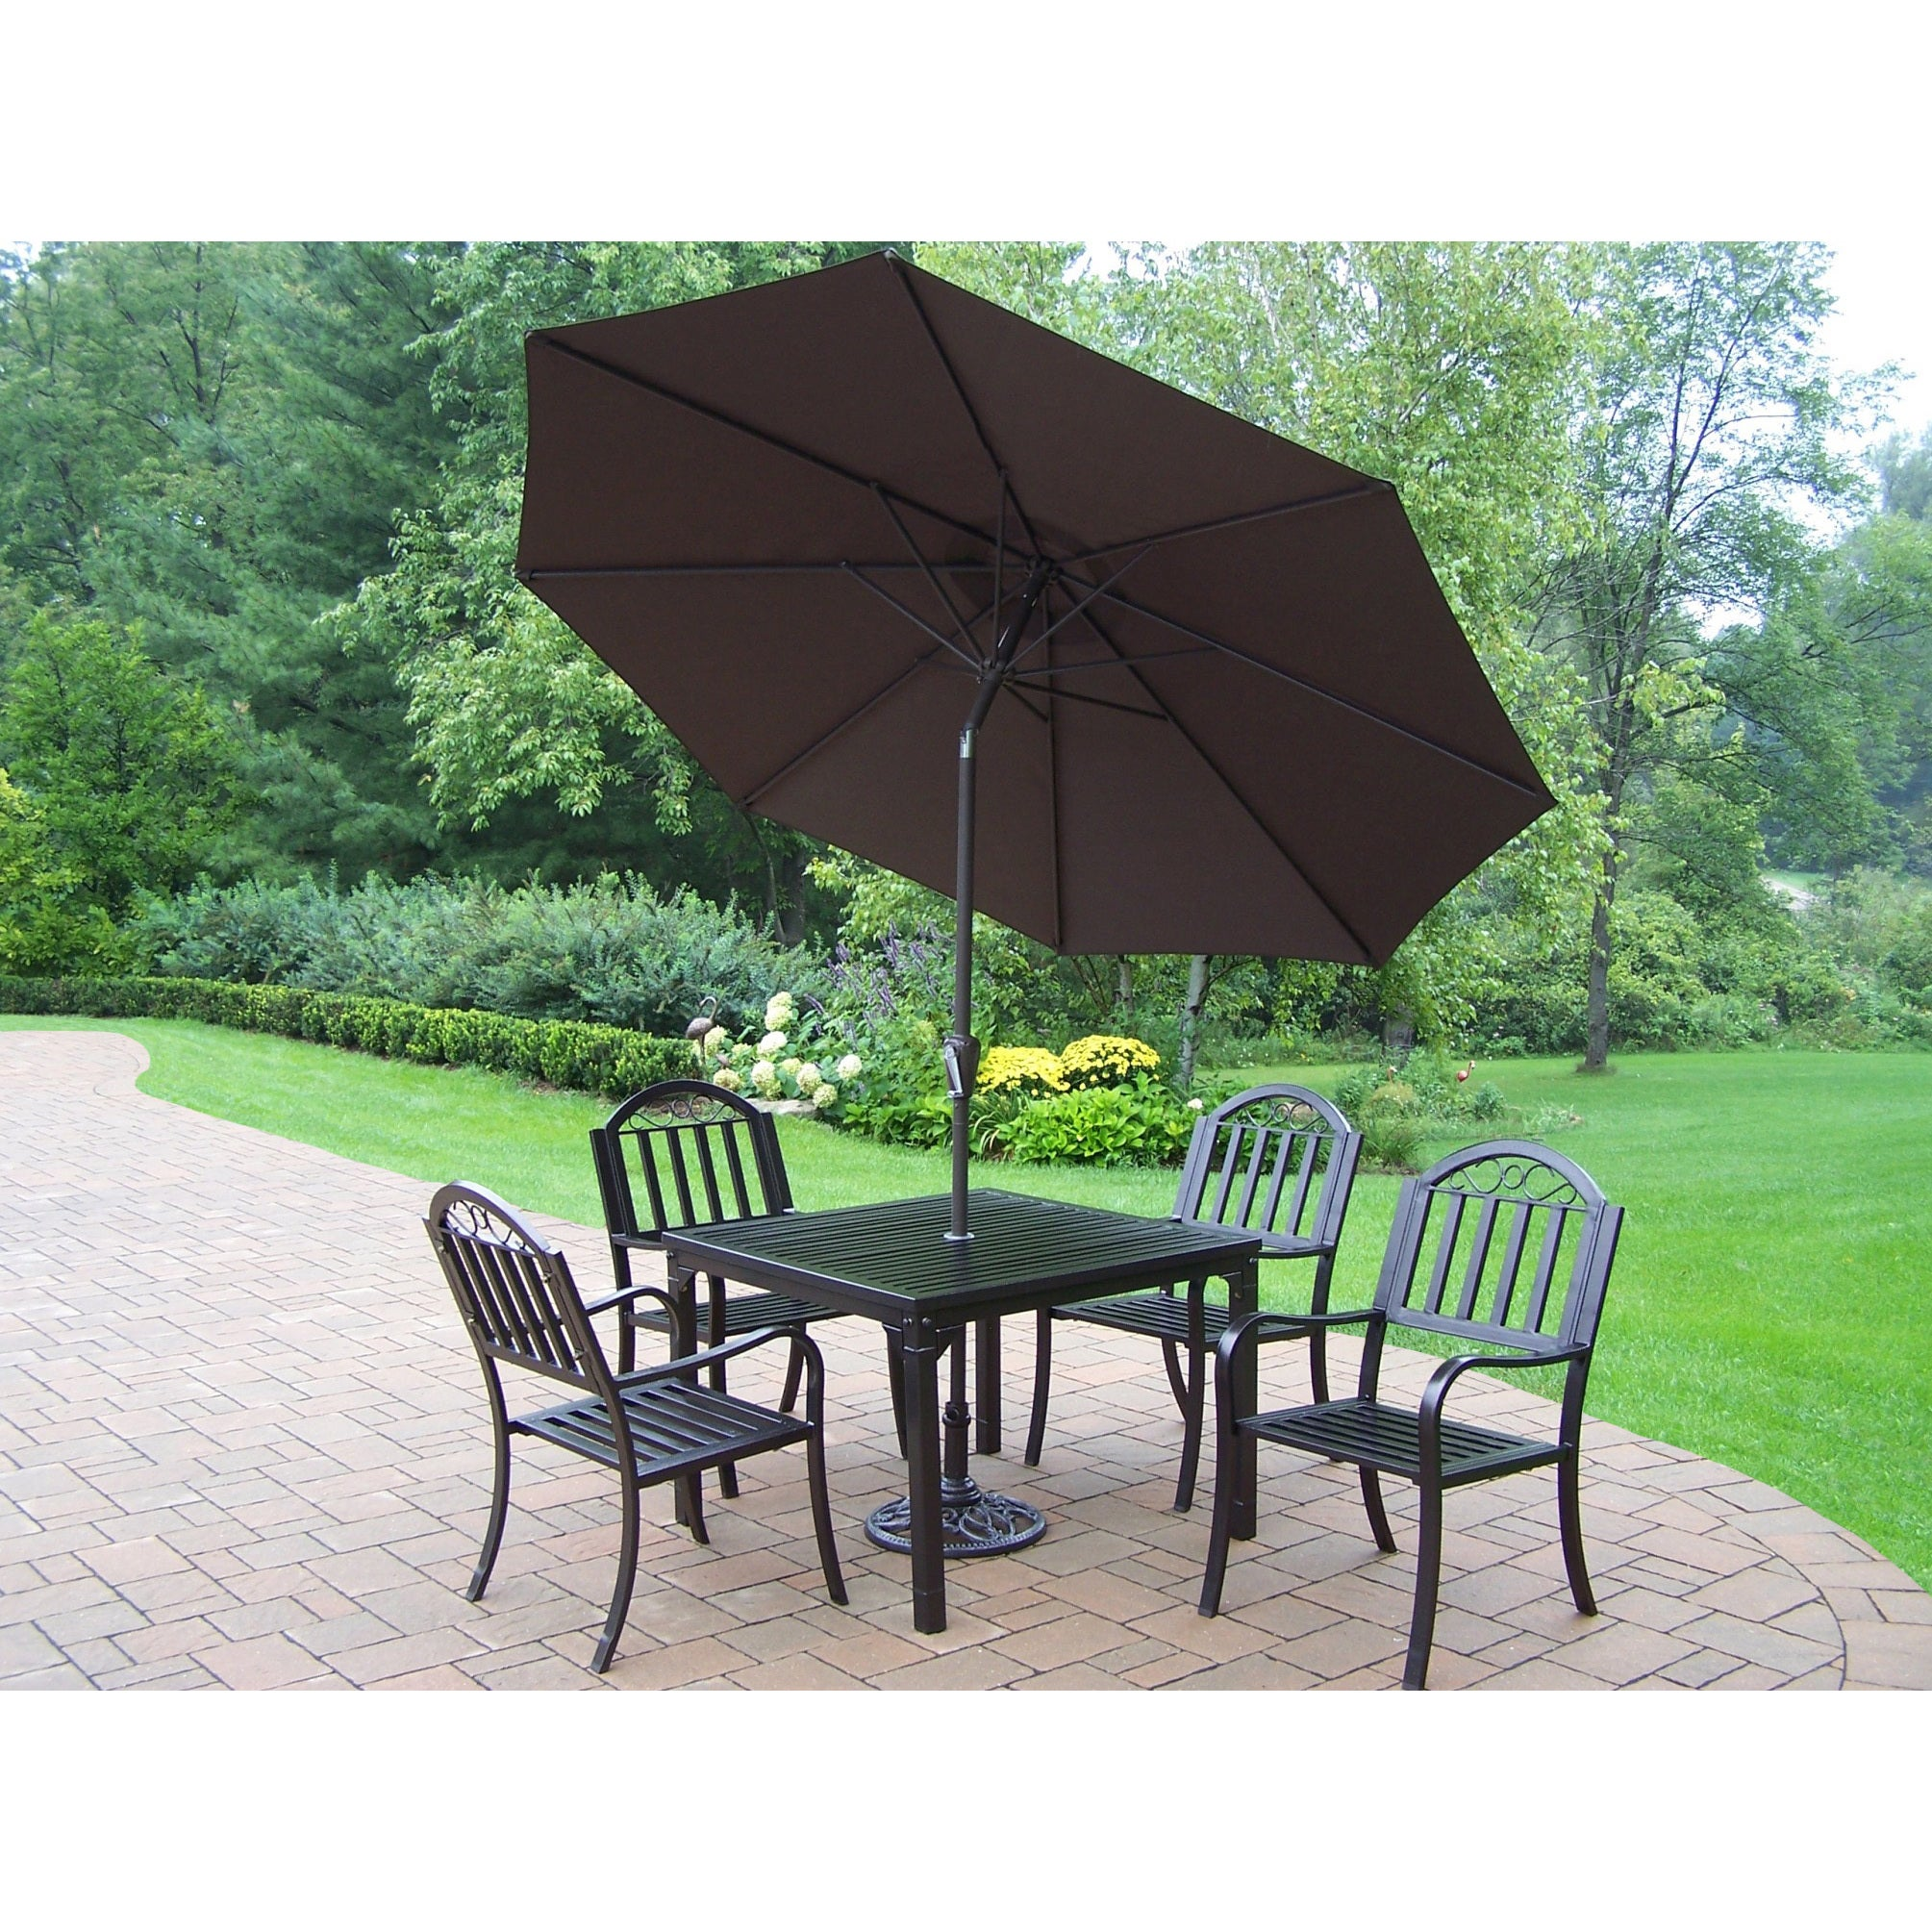 7 Piece Outdoor Dining Set With Table 4 Chairs 9 Ft Brown Umbrella On Sale Overstock 13930189